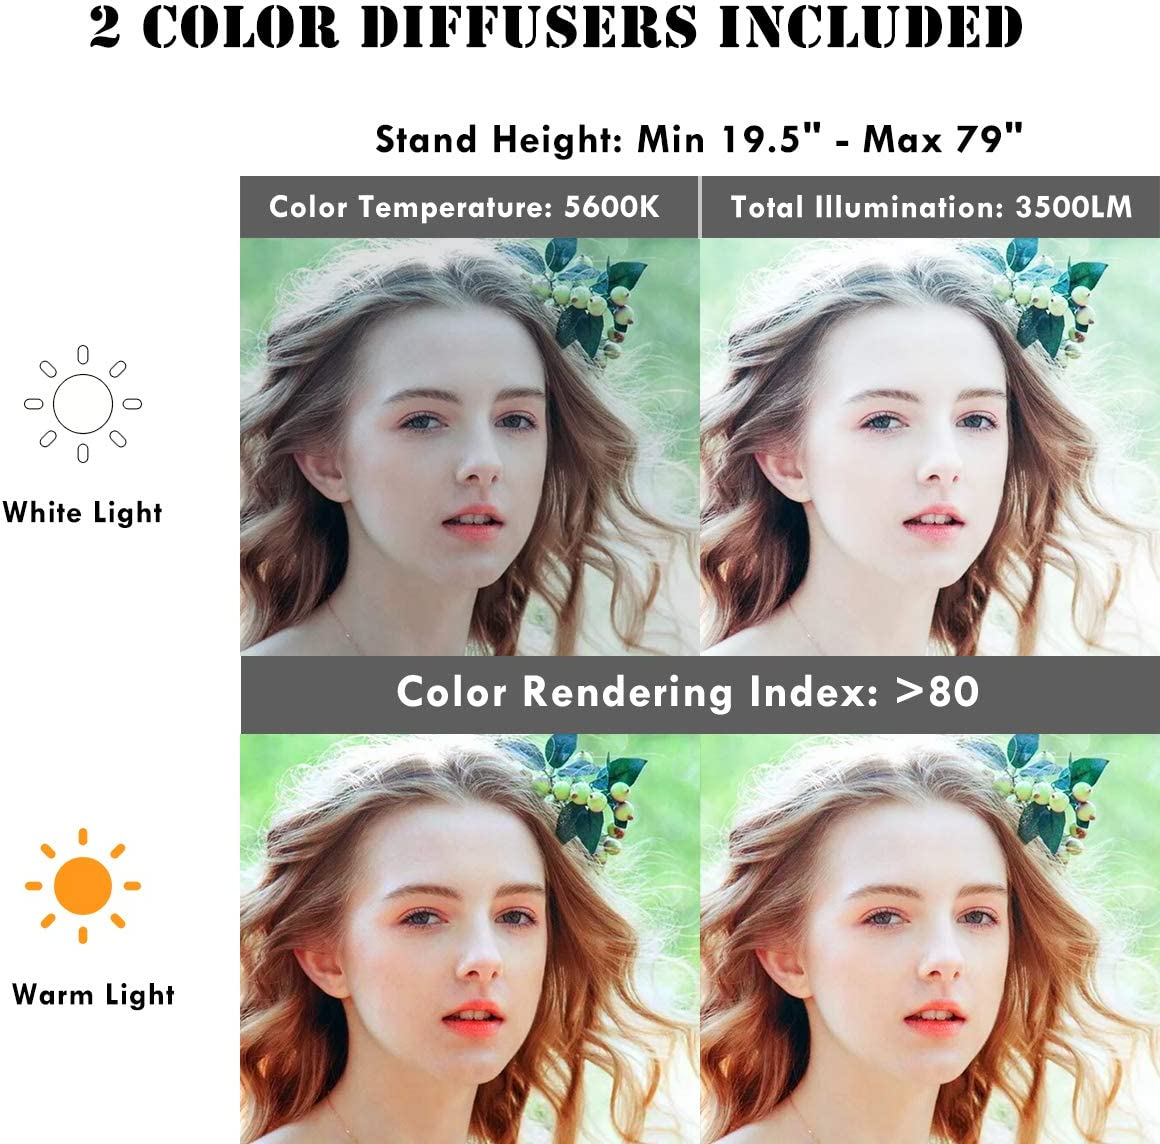 Plastic Color Filter Set Vine Self-Portrait Video Shooting Safstar 12 LED Ring Light Flash Video Light 35W 5600K Dimmable with Stand Carrying Case for Smartphone YouTube